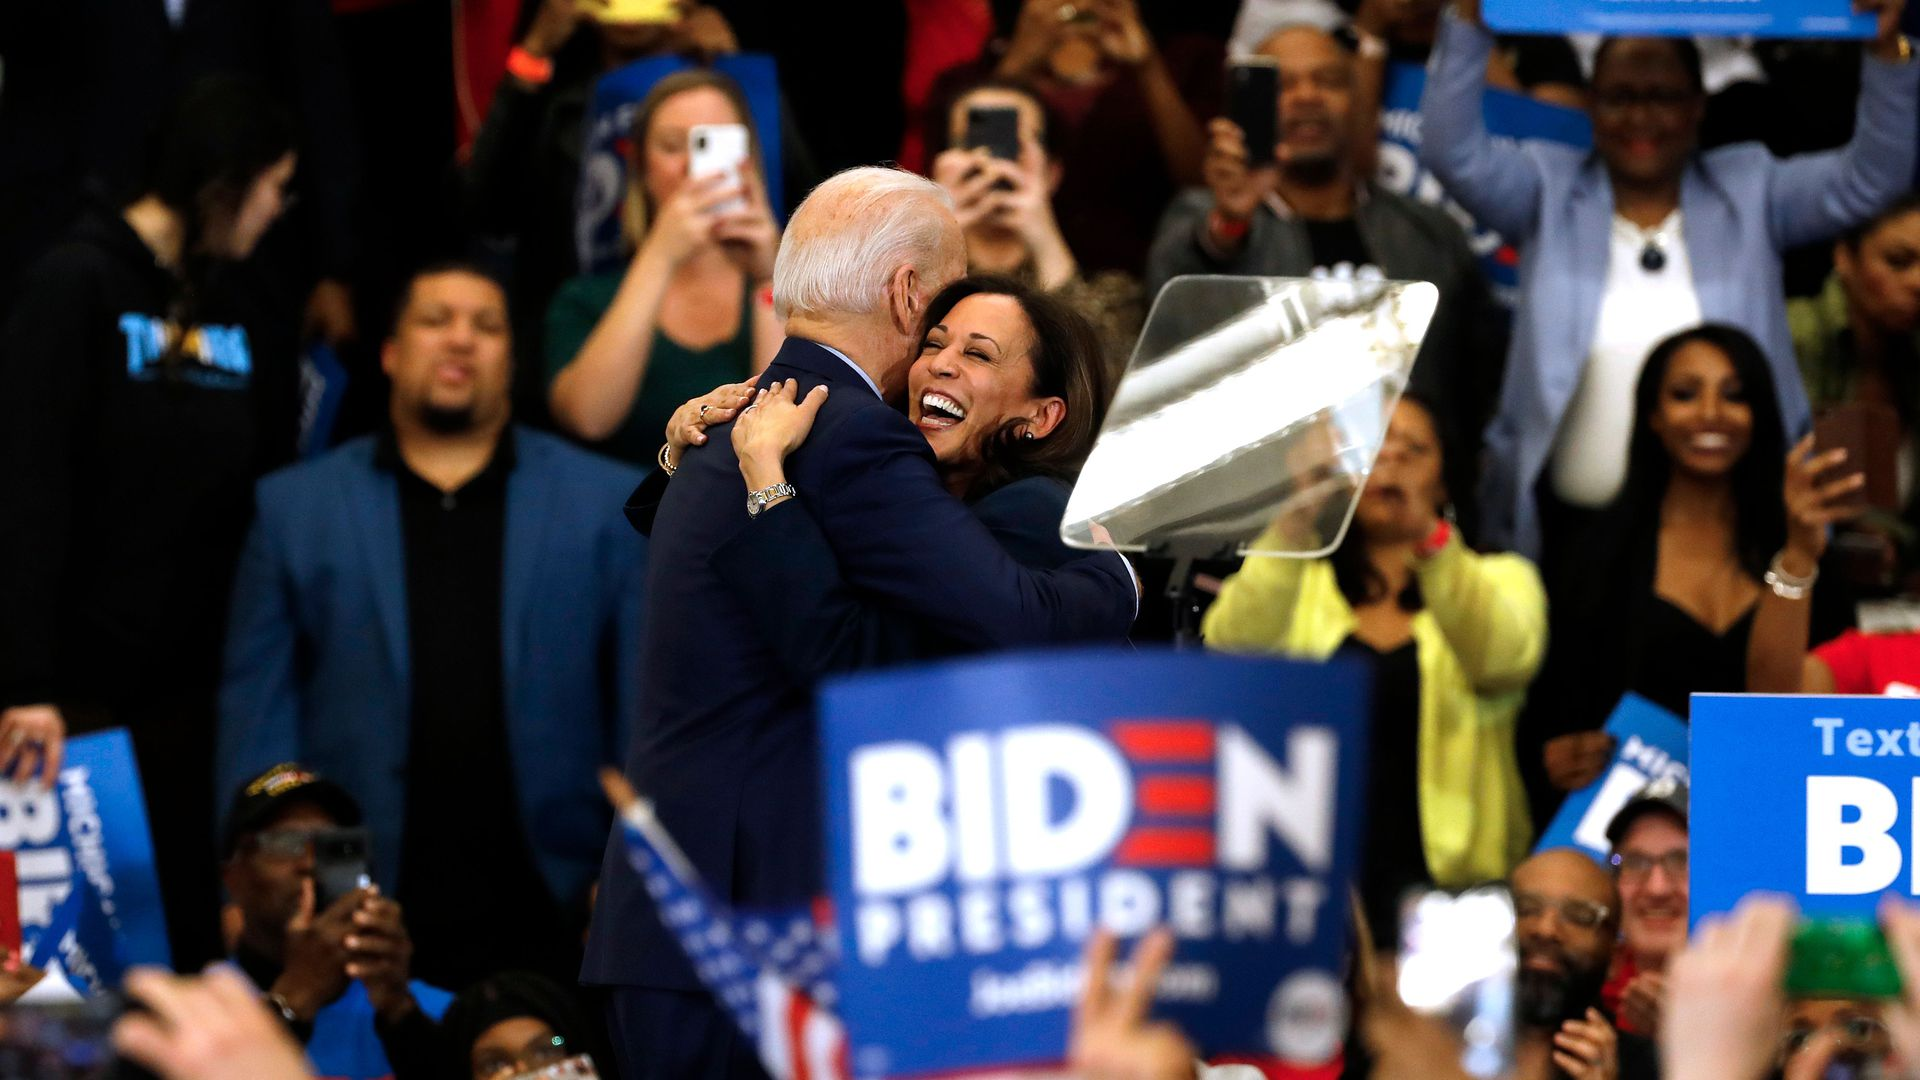 WHY BIDEN AND HARRIS ARE MY 2020 CHOICE